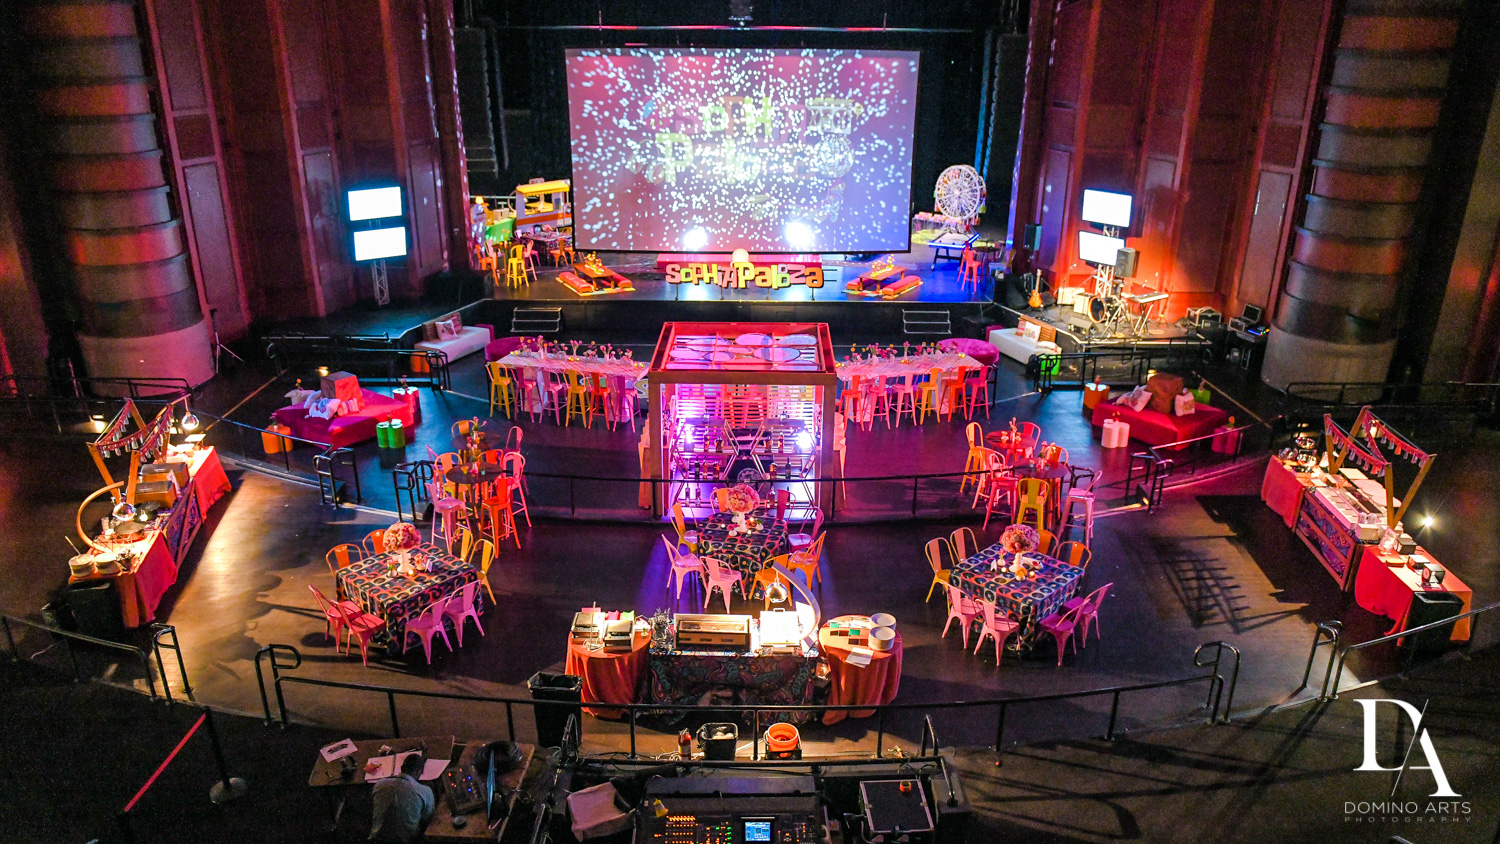 best mitzvah decor at Music Festival Bat Mitzvah at The Fillmore Miami Beach by Domino Arts Photography